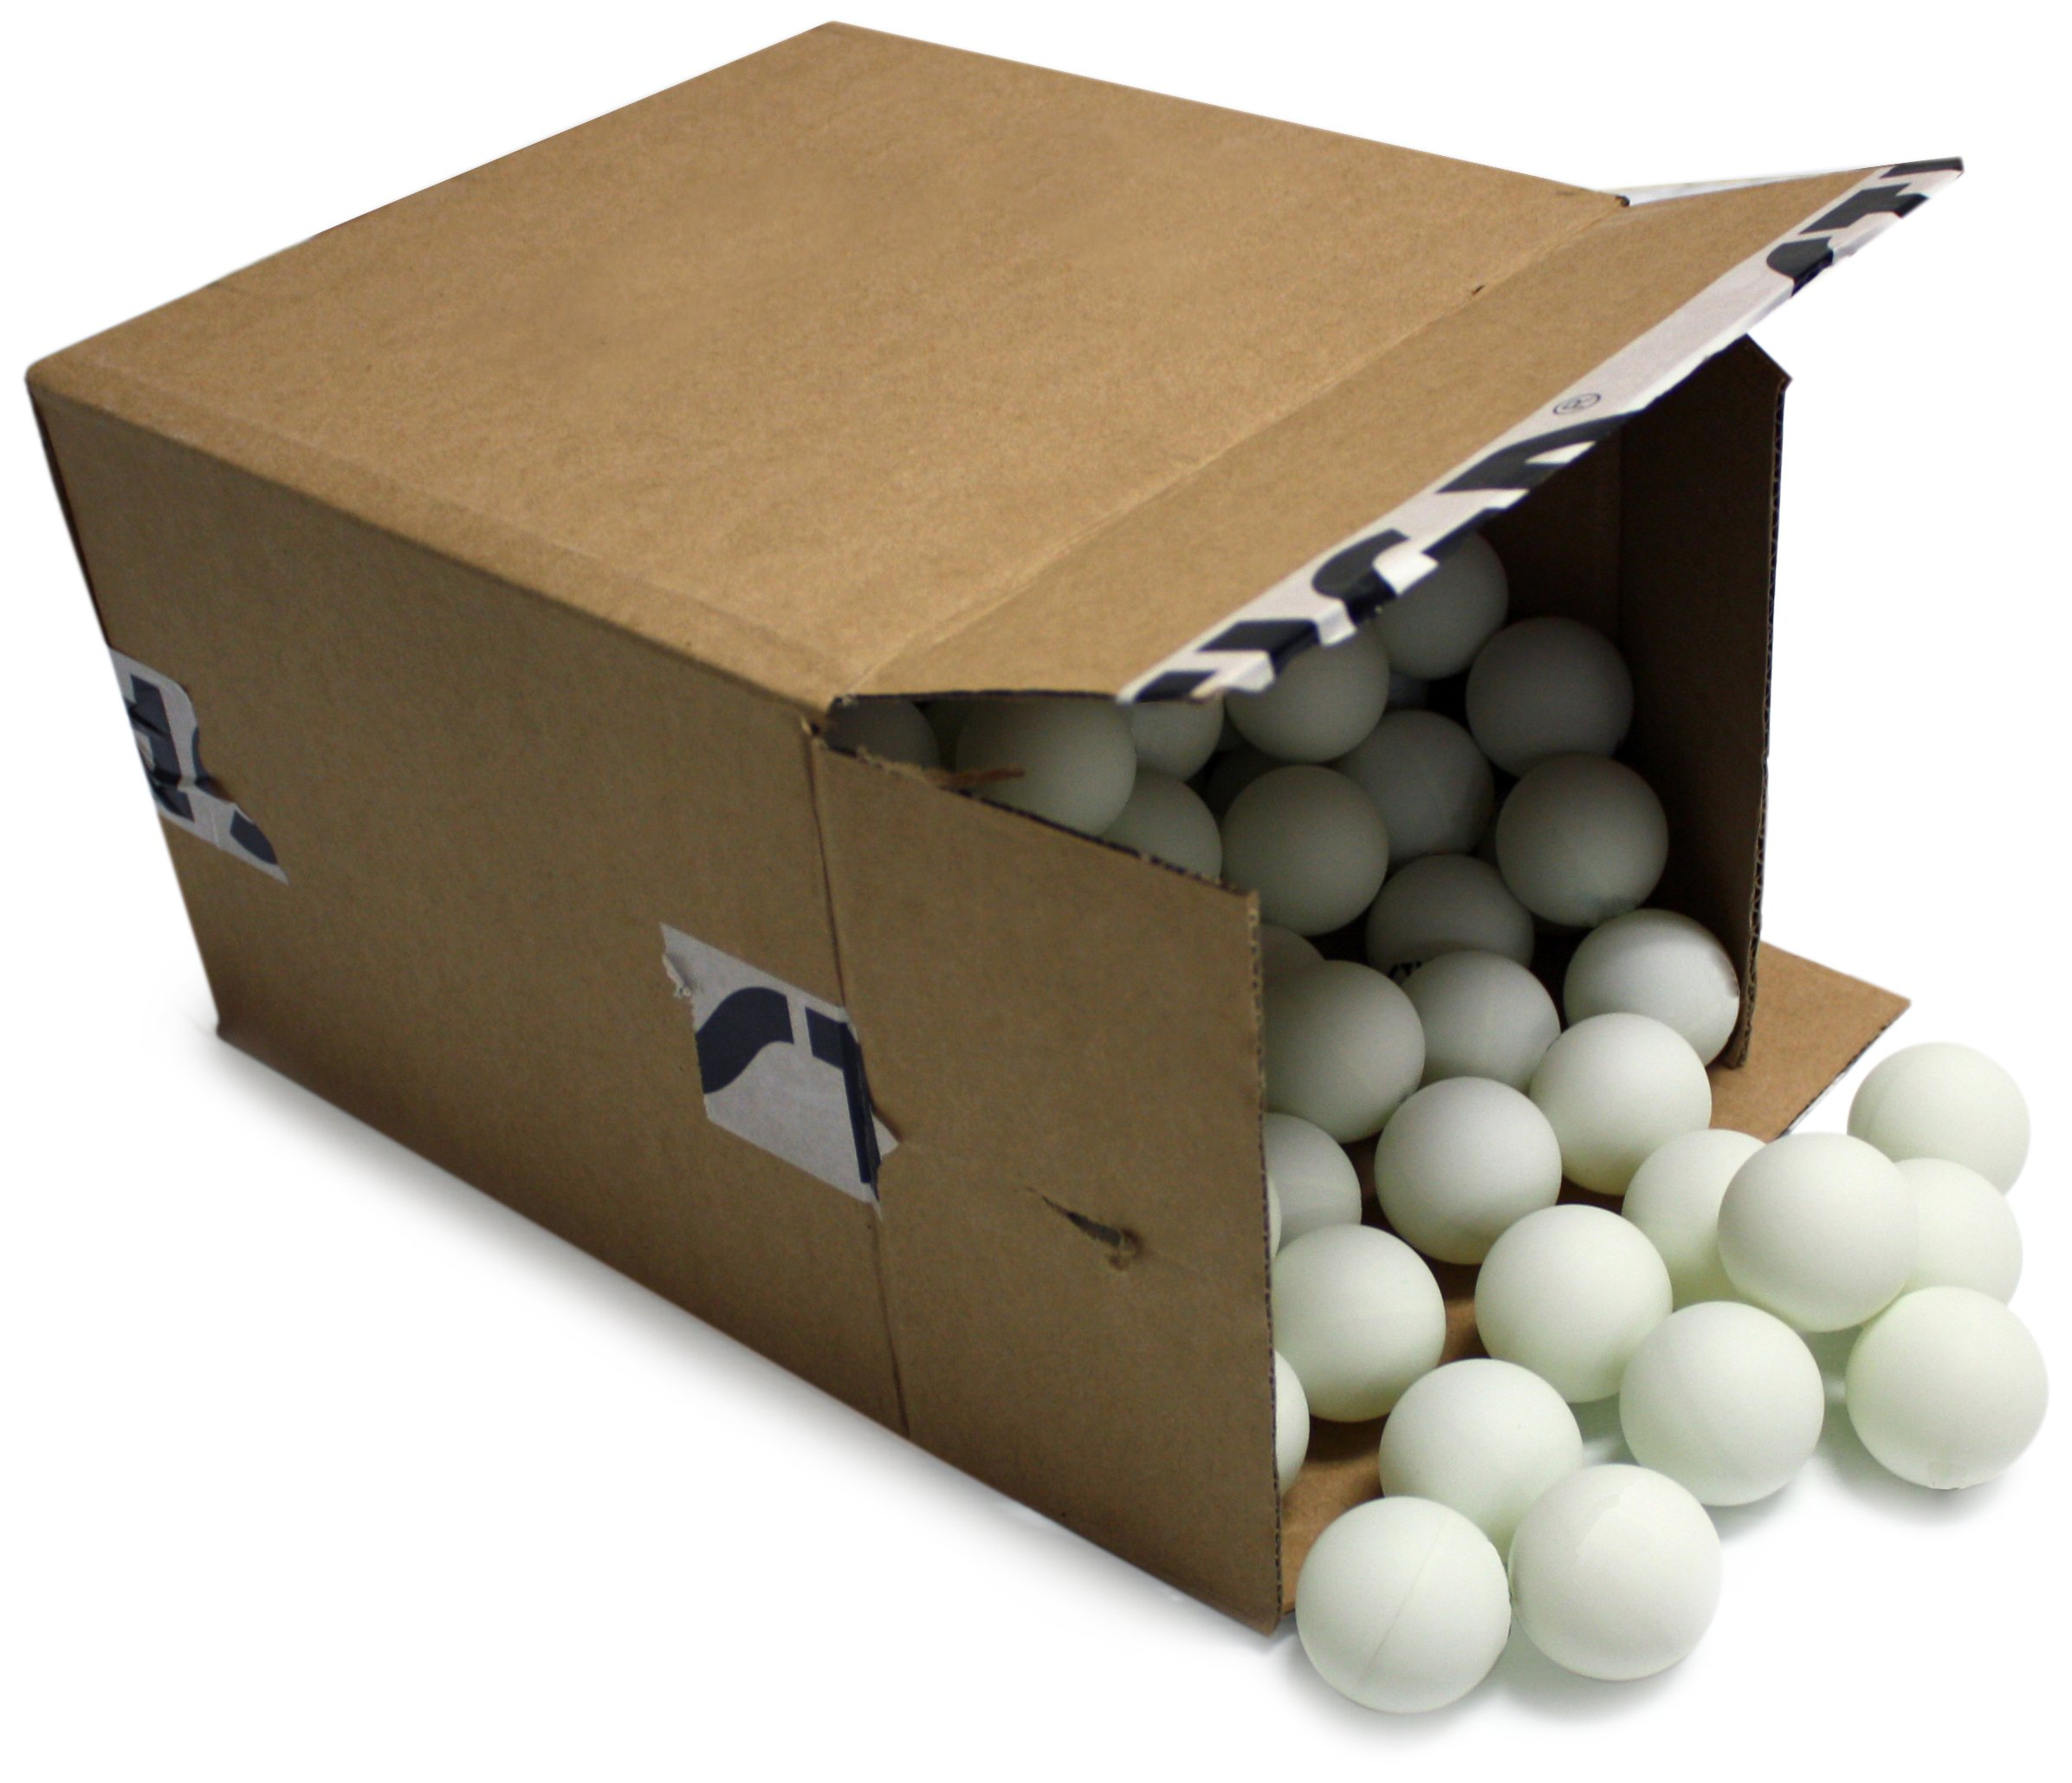 STIGA 2-Star White No Print Table Tennis Balls (144-Count)